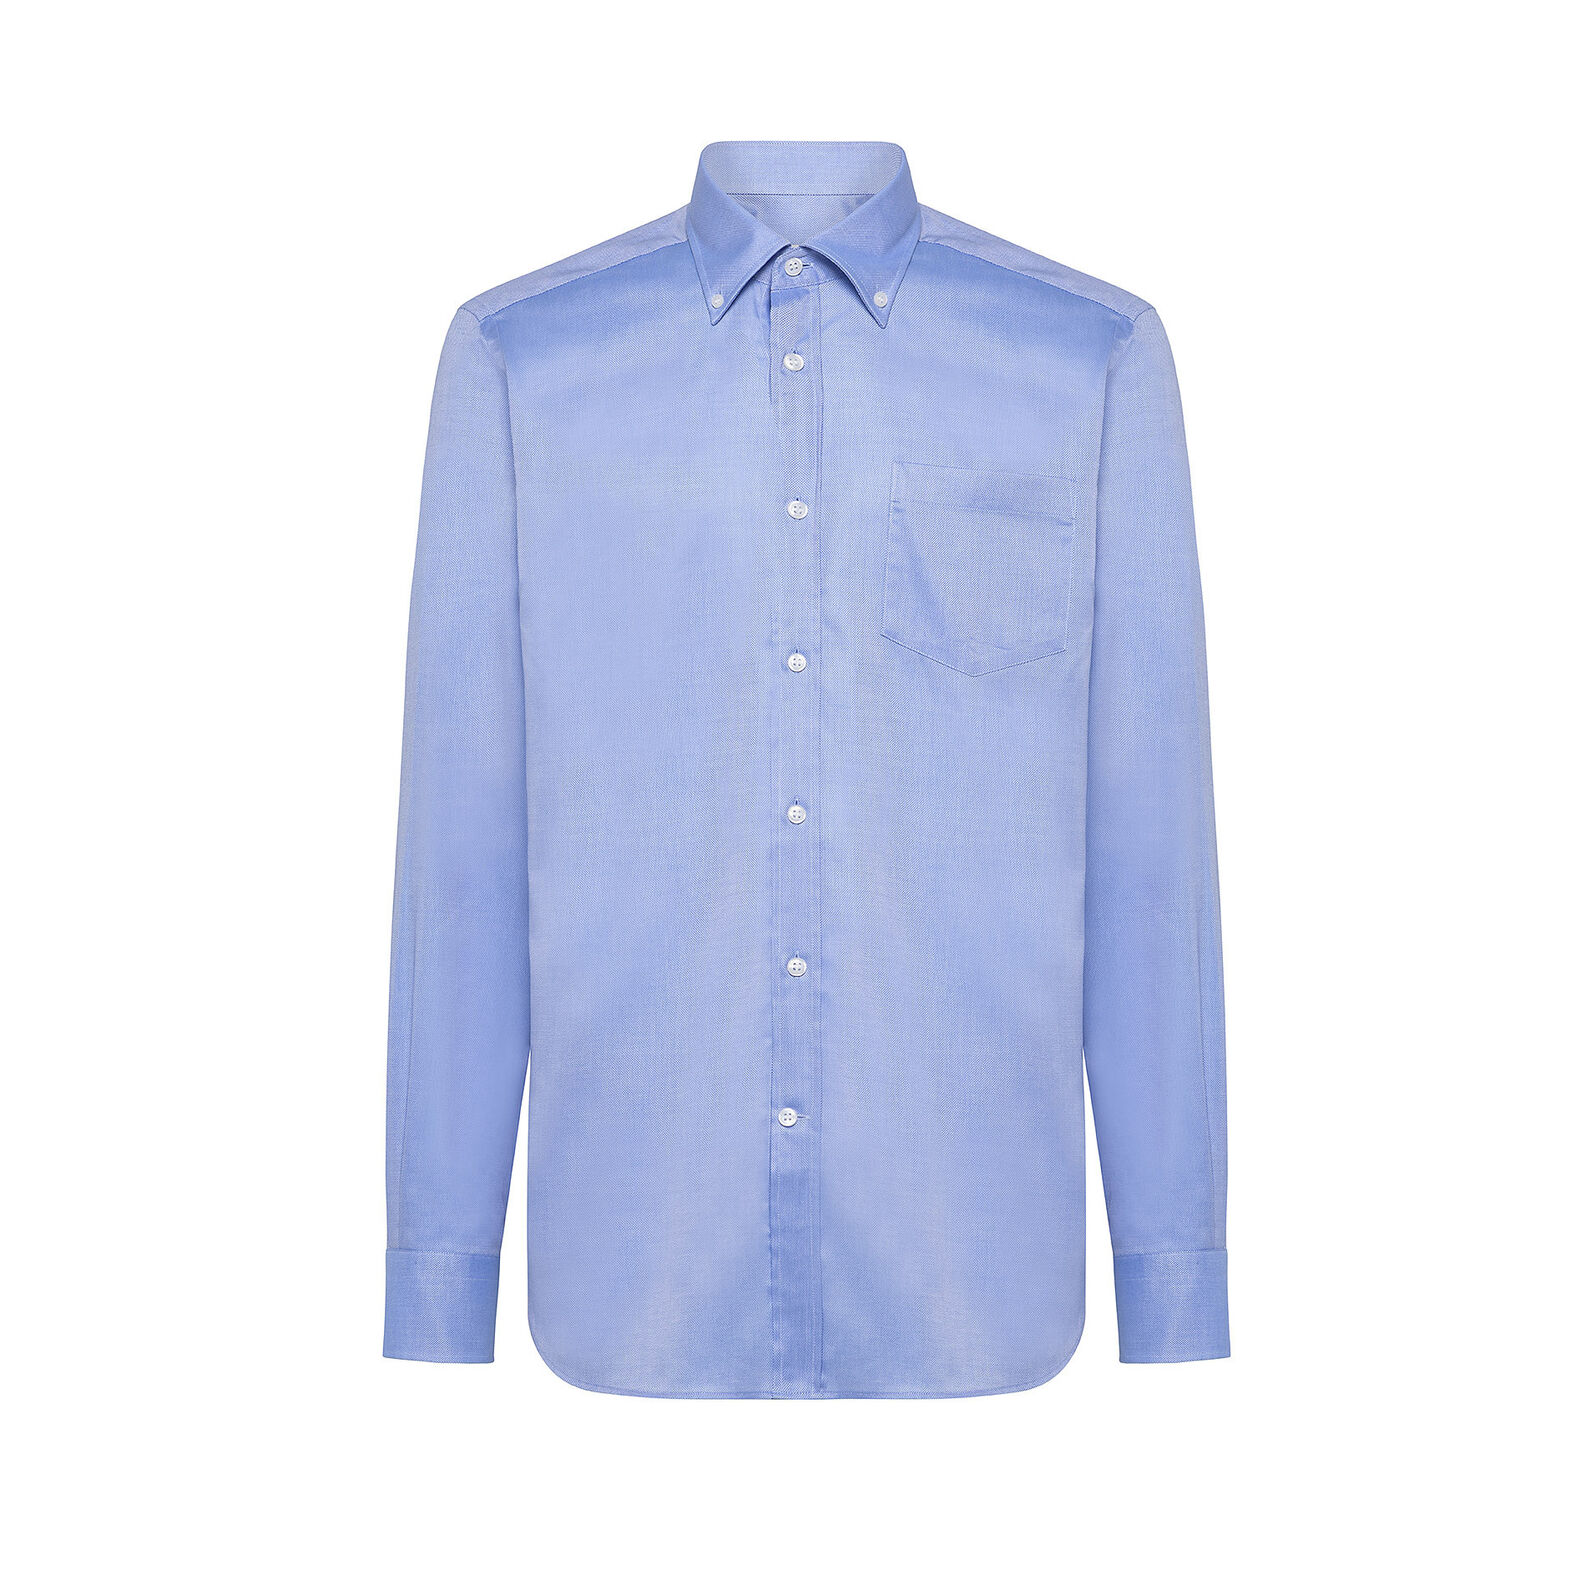 Regular-fit cotton shirt with button-down